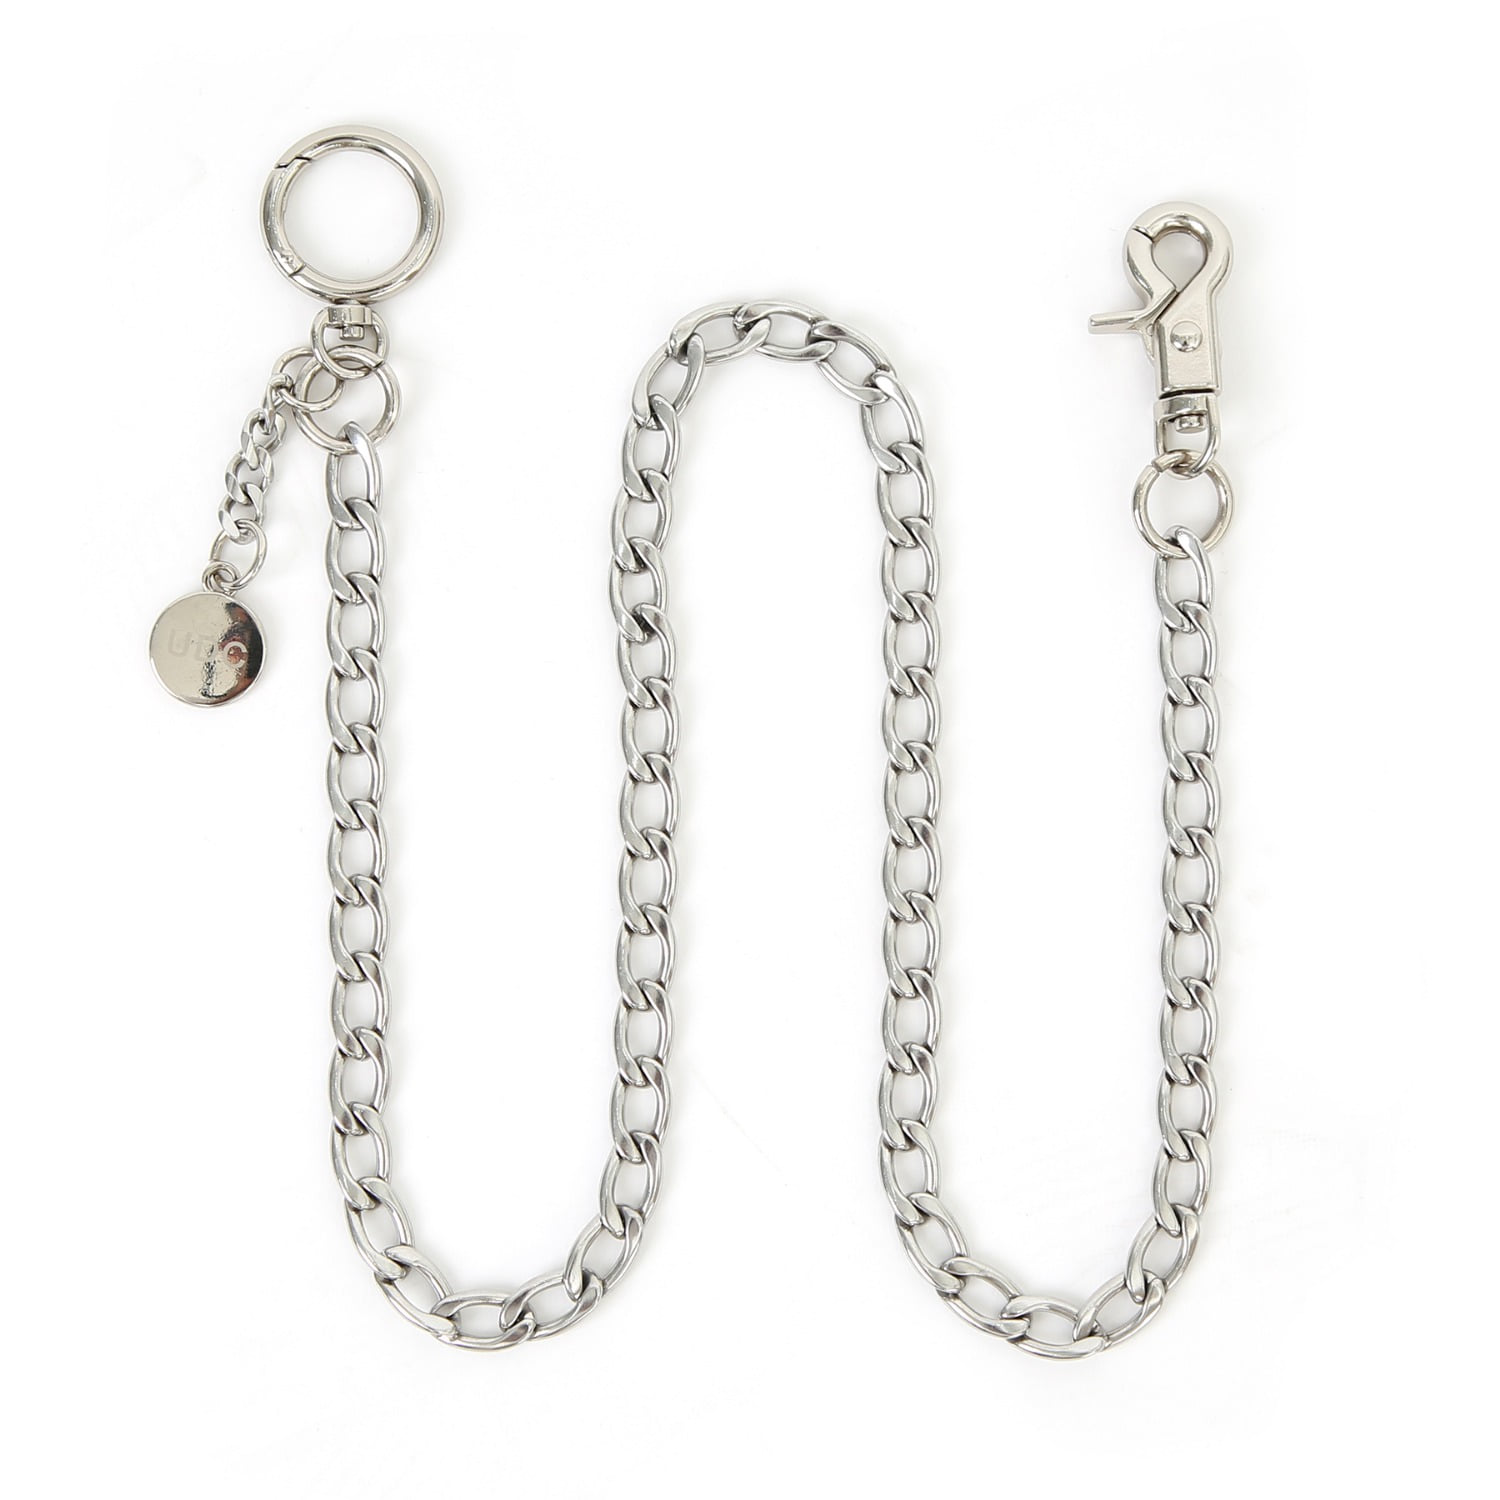 FLAT PANTS CHAIN / SURGICAL MIX